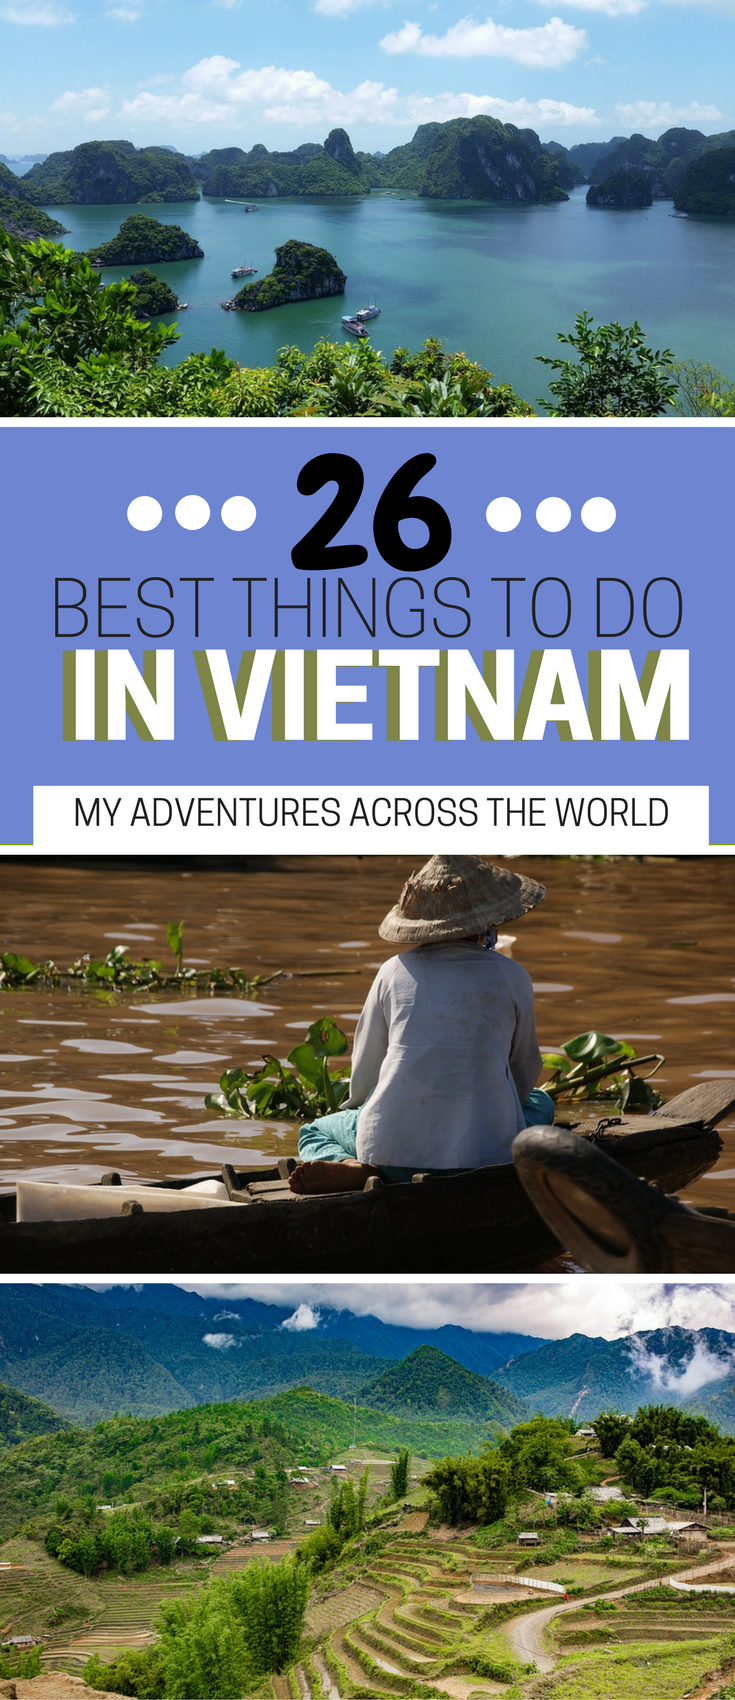 20 Incredibly Fun Things To Do In Vietnam In 20 Days   Asia travel ...